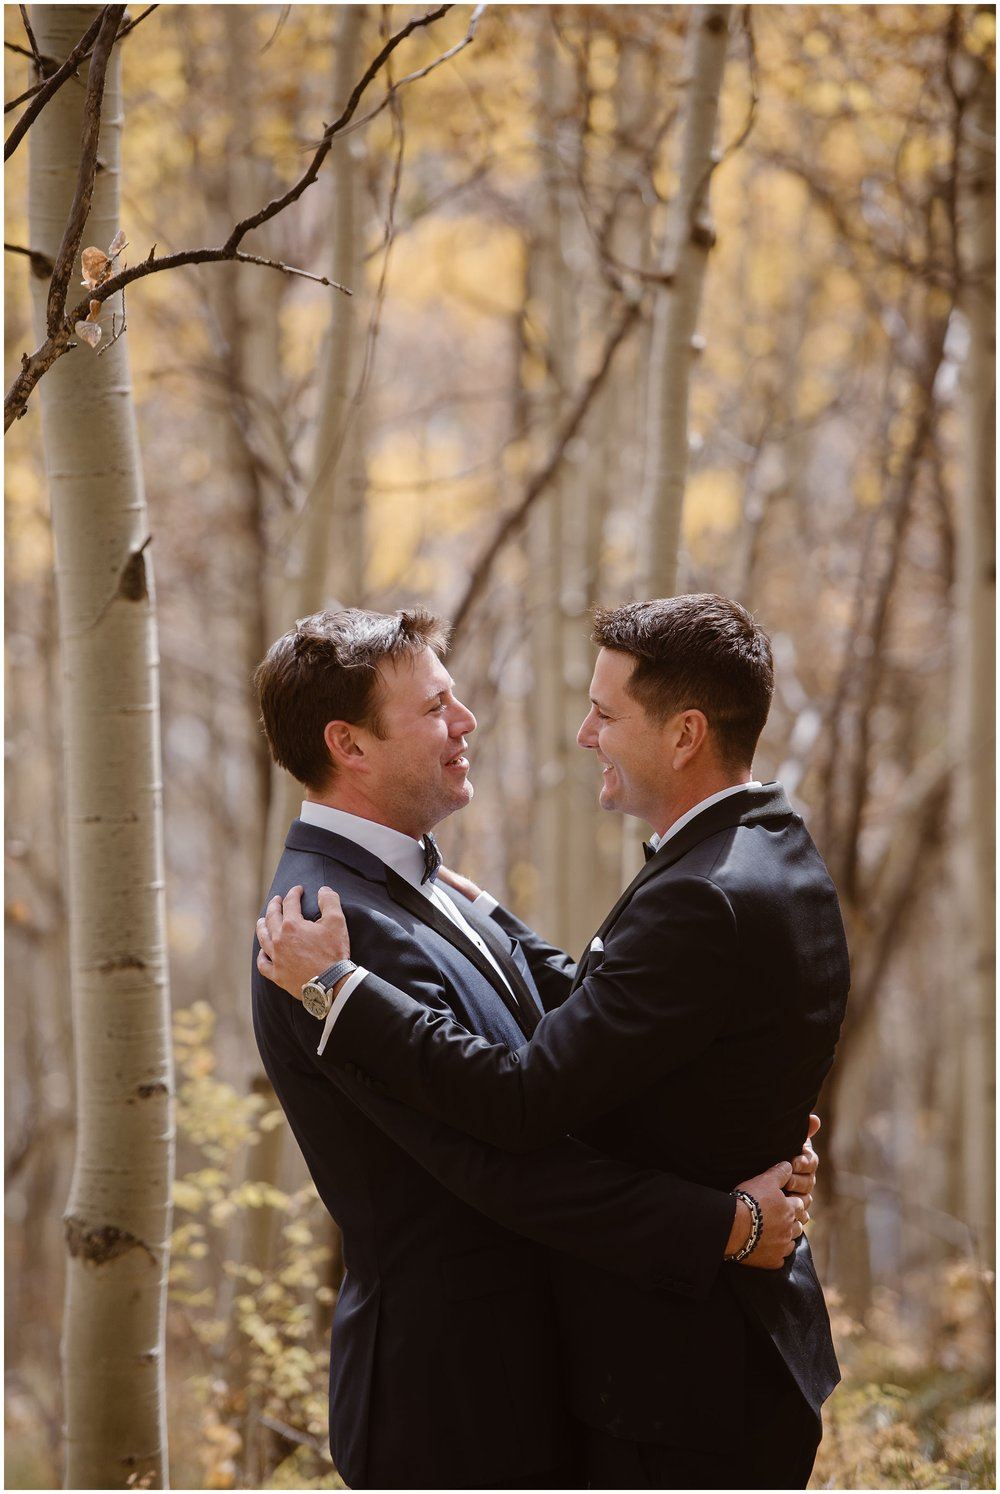 Brian and Ernie, the two grooms, embrace each other in the middle of a beautiful aspen grove in Colorado. Their dark suits contrast beautifully against the white aspen trunks and the bright gold leaves. These elopement photos were one of the unique eloping ideas that Brian and Ernie wanted for their Colorado mountain wedding.